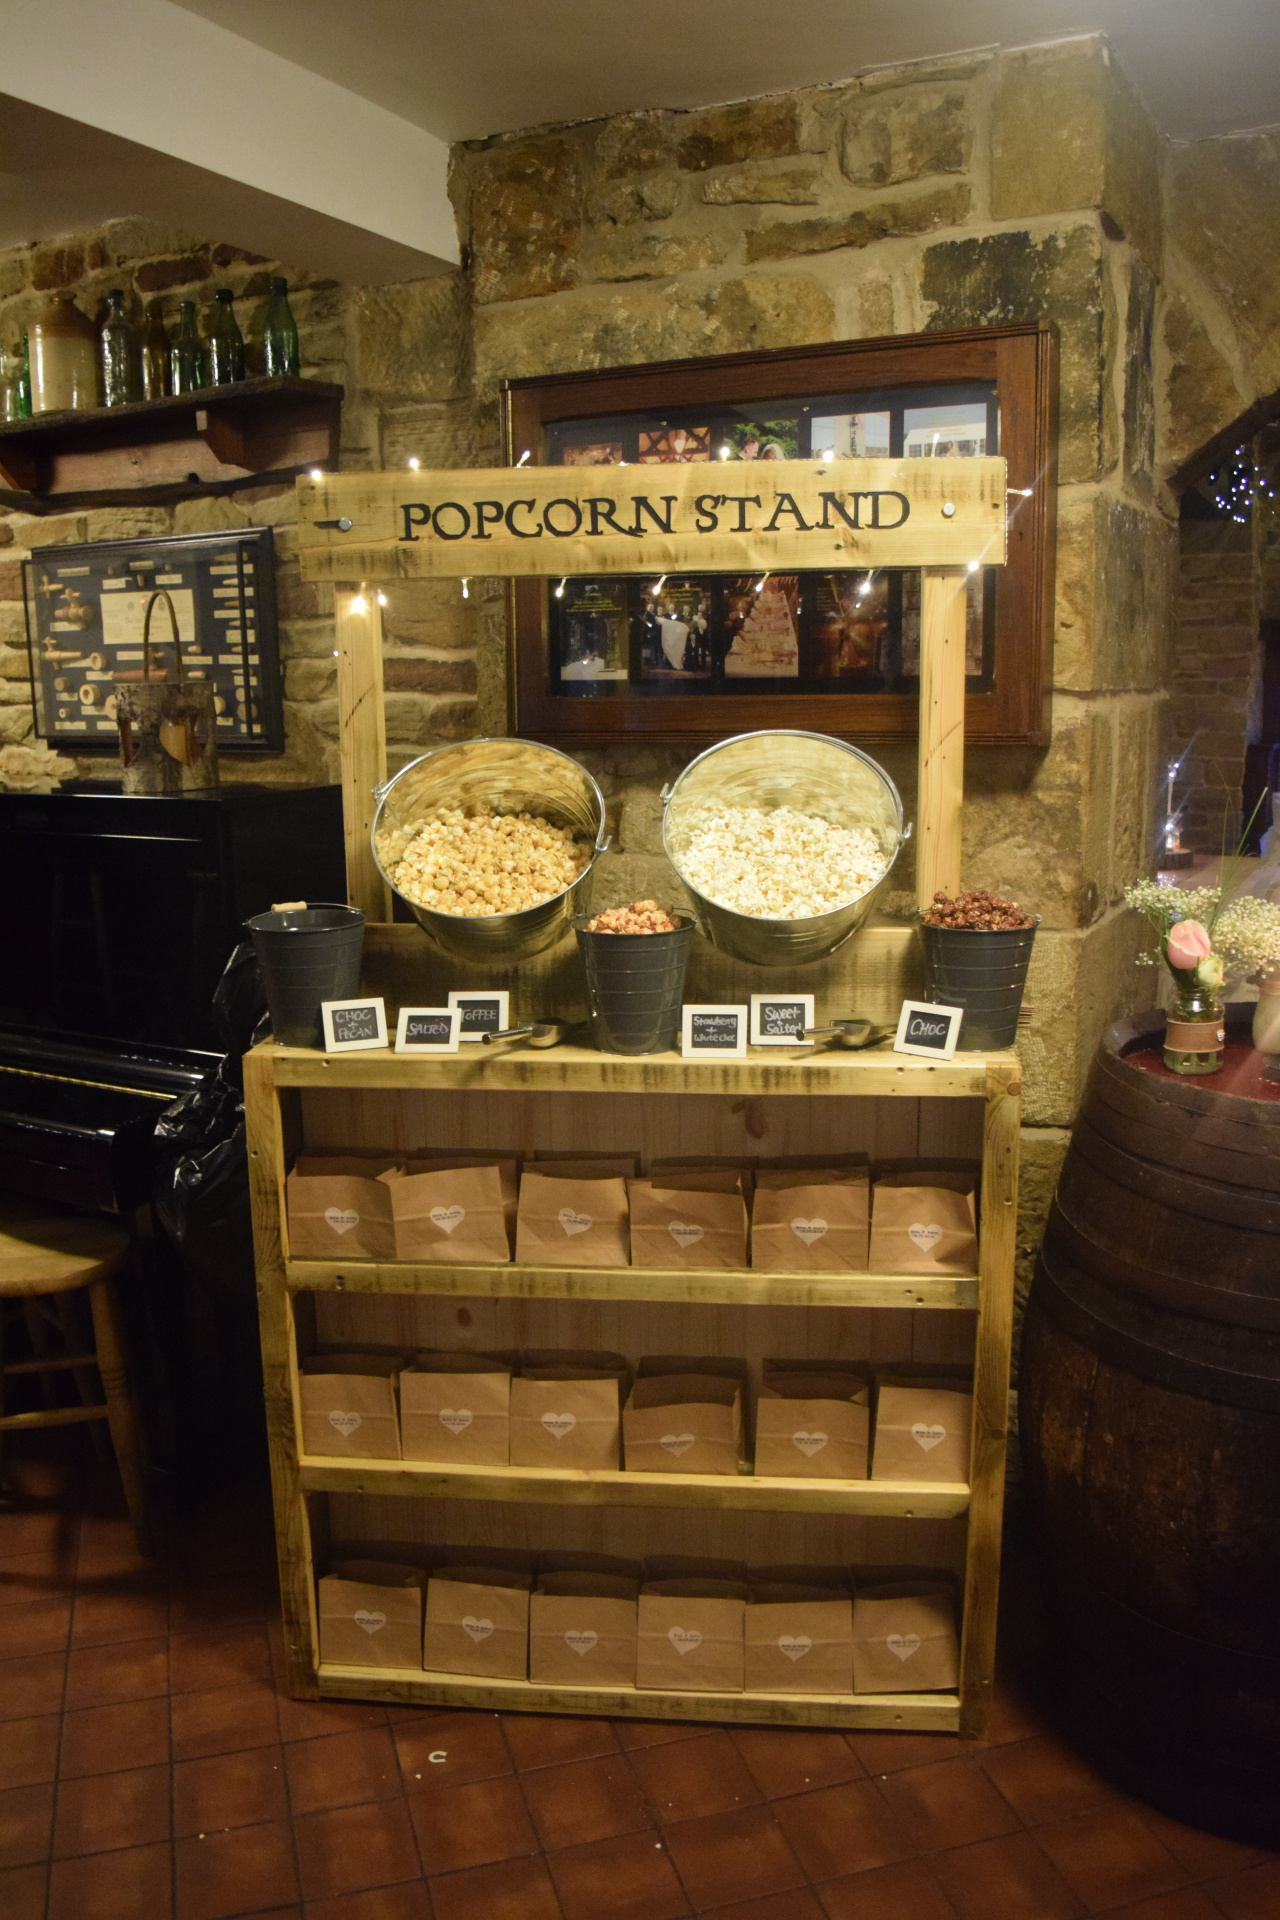 Popcorn Stand hire - give your guests the new sweet table!